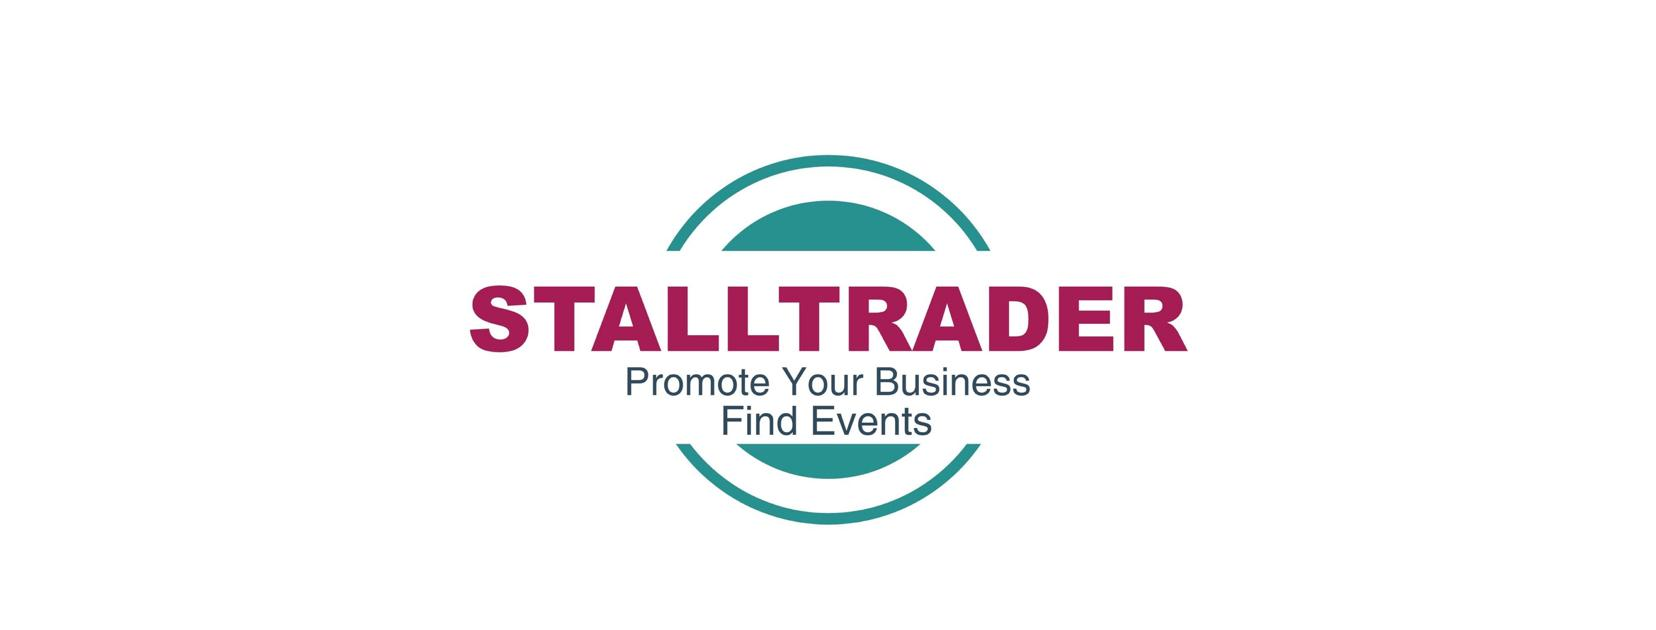 Stalltrader - Get listed - Add an Event - Network with Members Logo